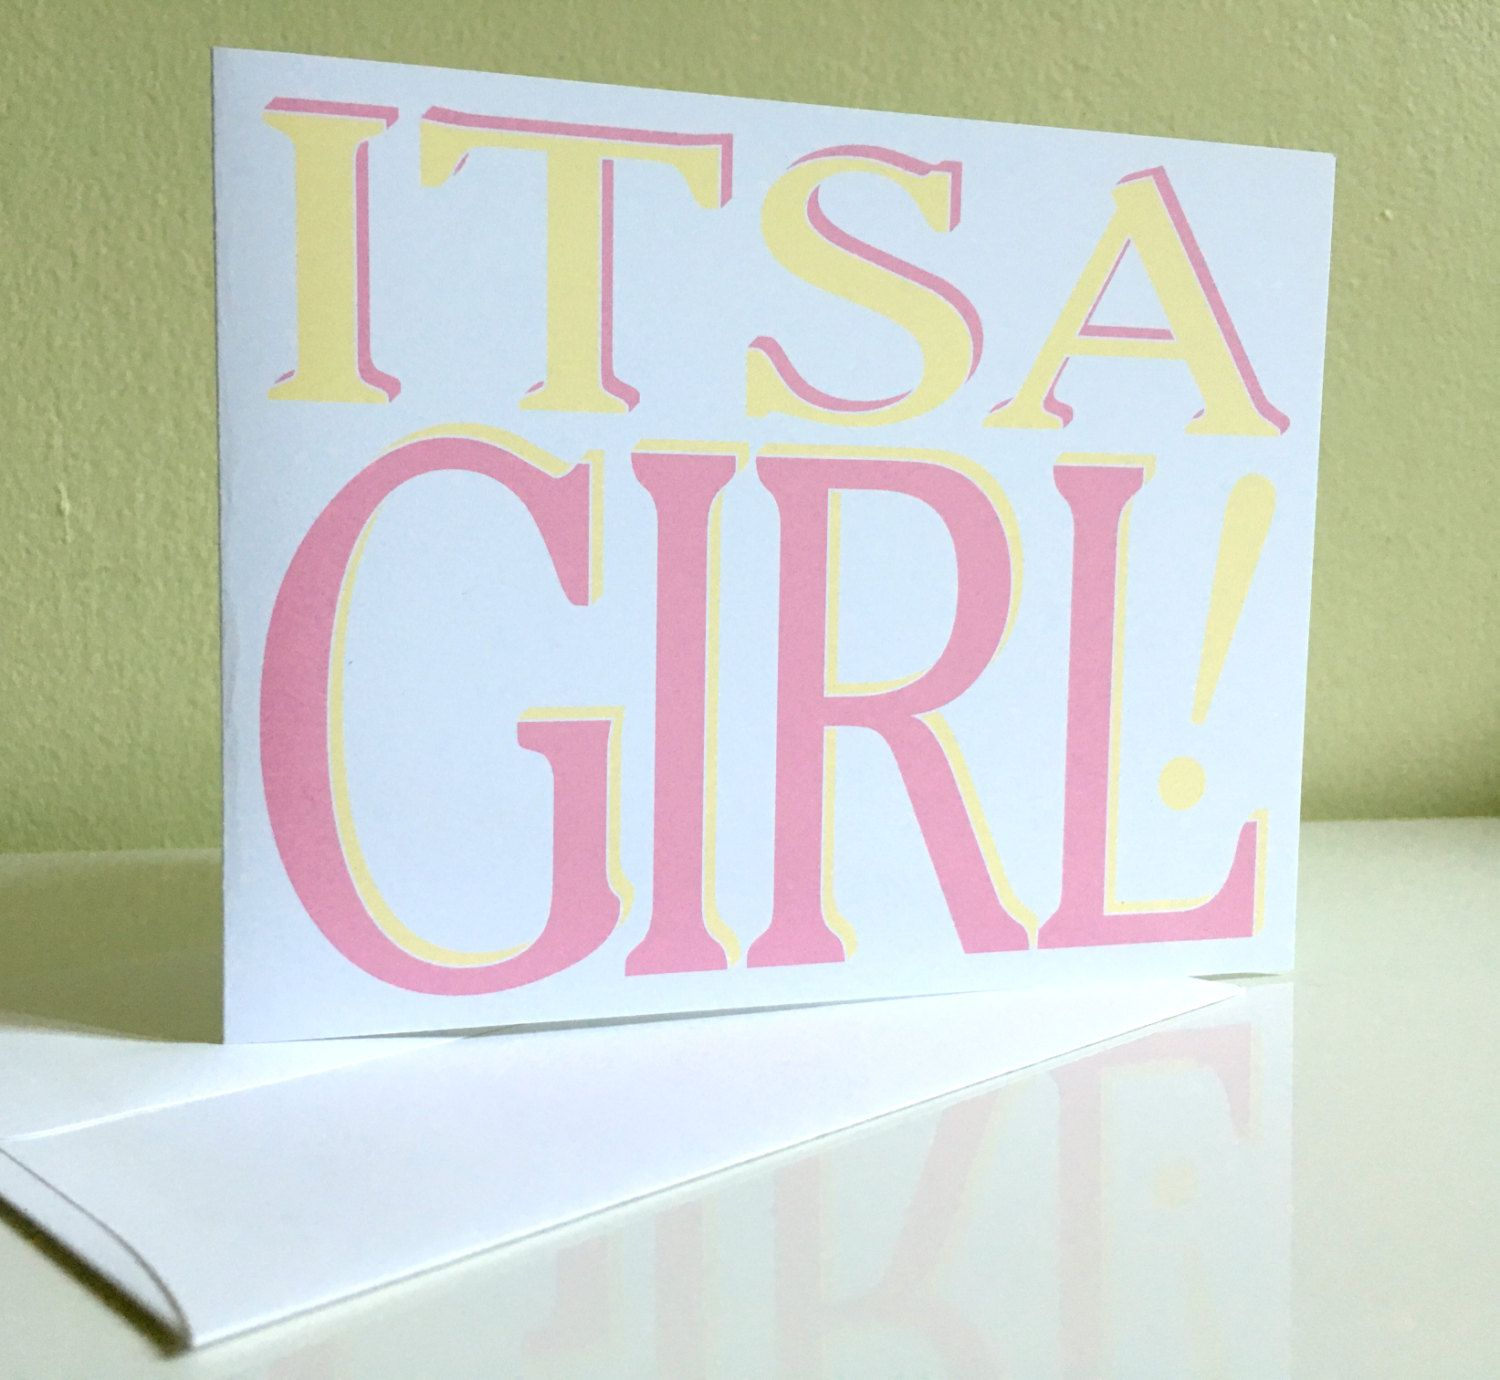 Its a girl baby card baby girl greeting card congratulations baby card baby girl greeting card congratulations card girl congrats new baby card by paperheartdispatch on etsy kristyandbryce Images